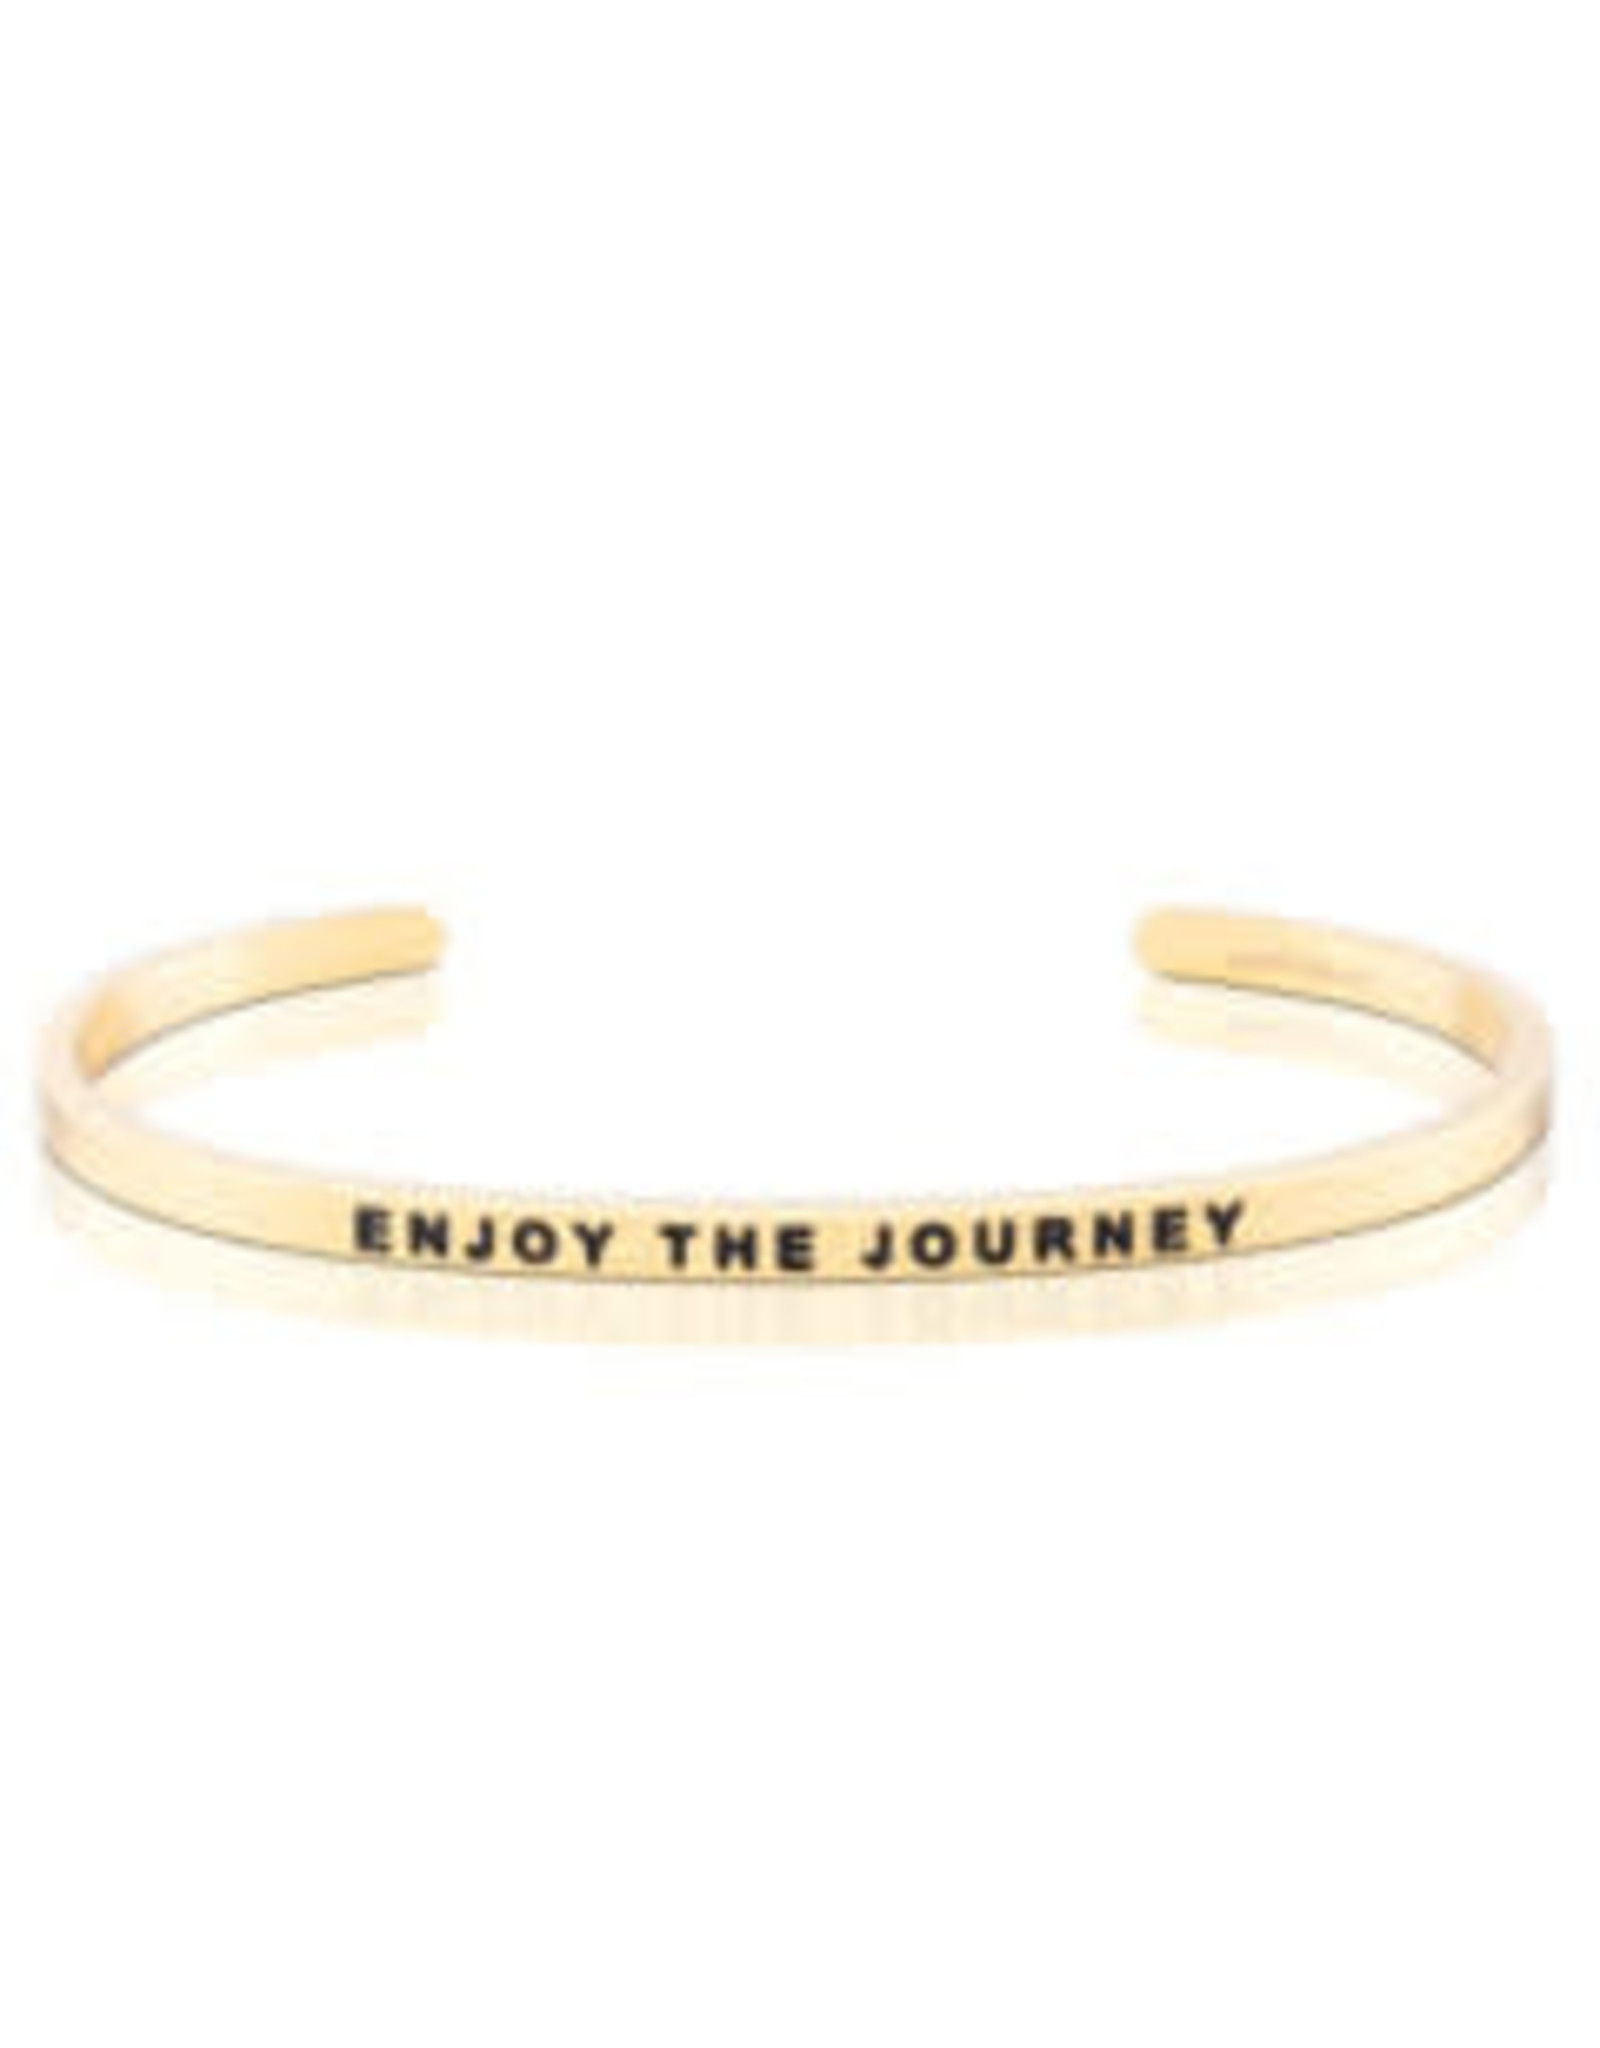 MantraBand MantraBand Bracelet, Enjoy the Journey